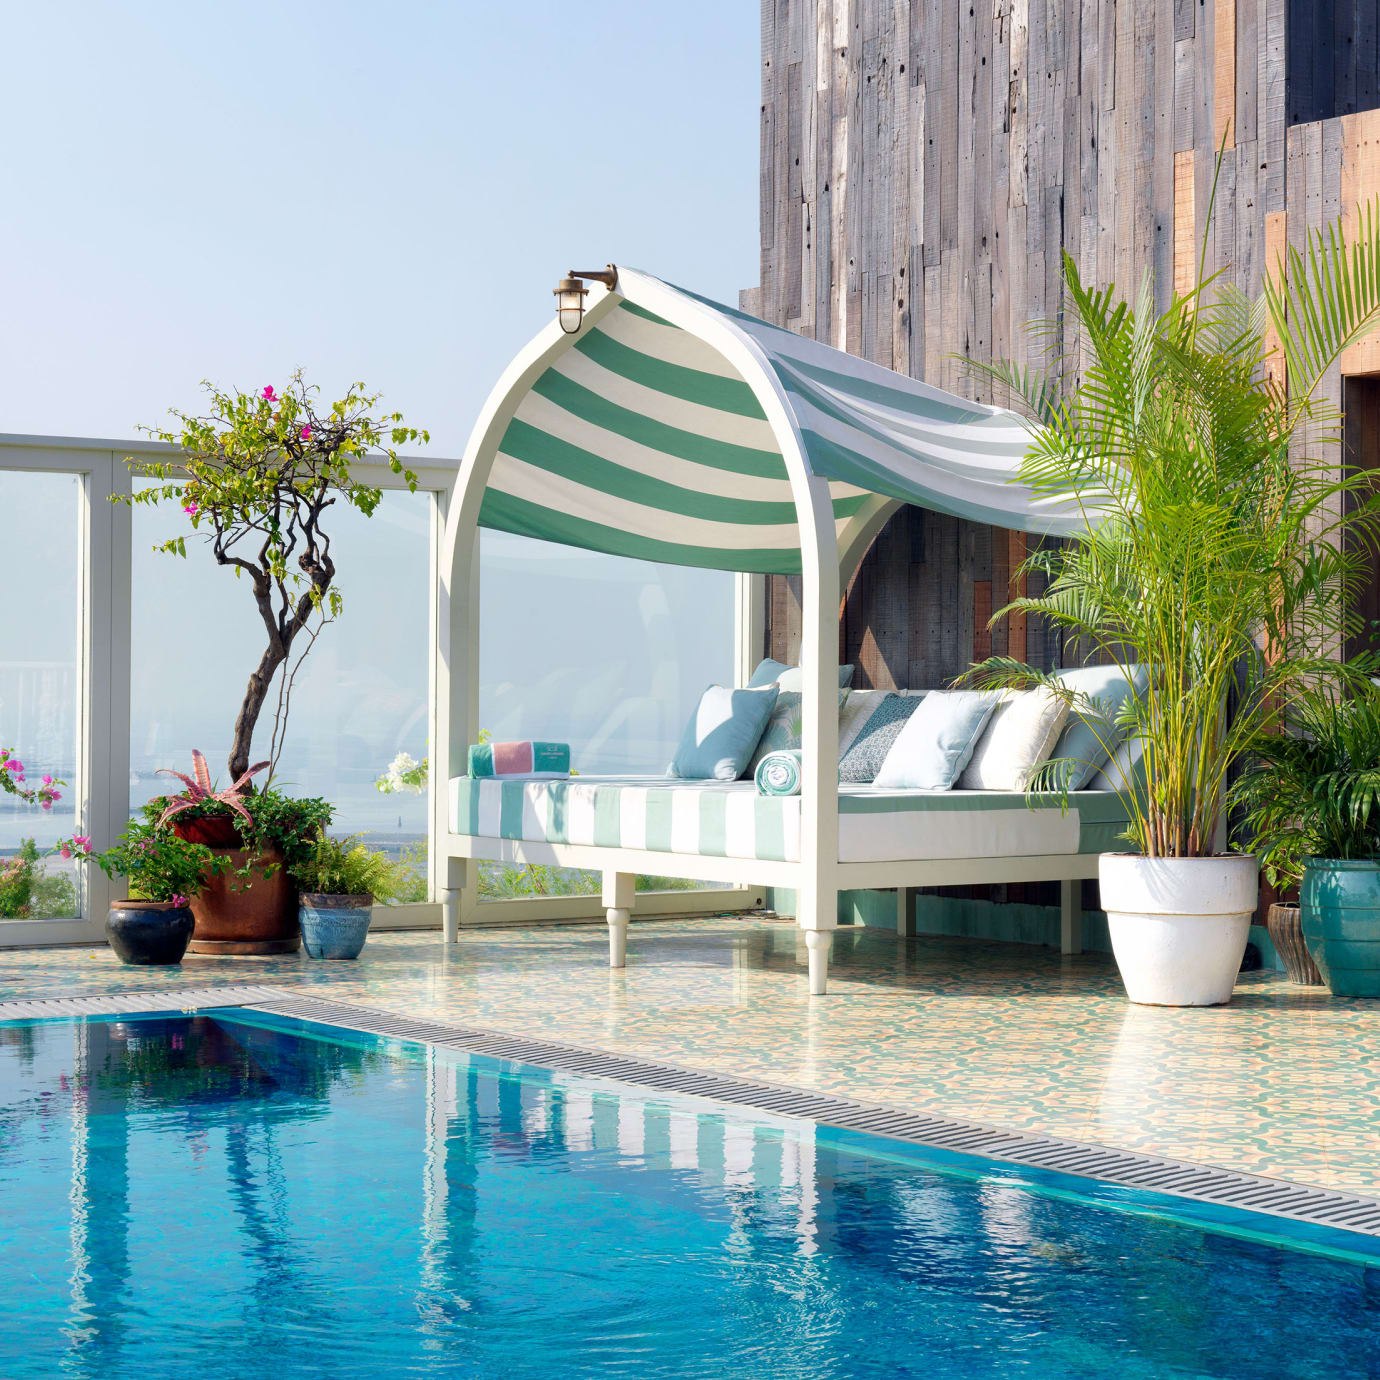 A day bed by a rooftop pool.